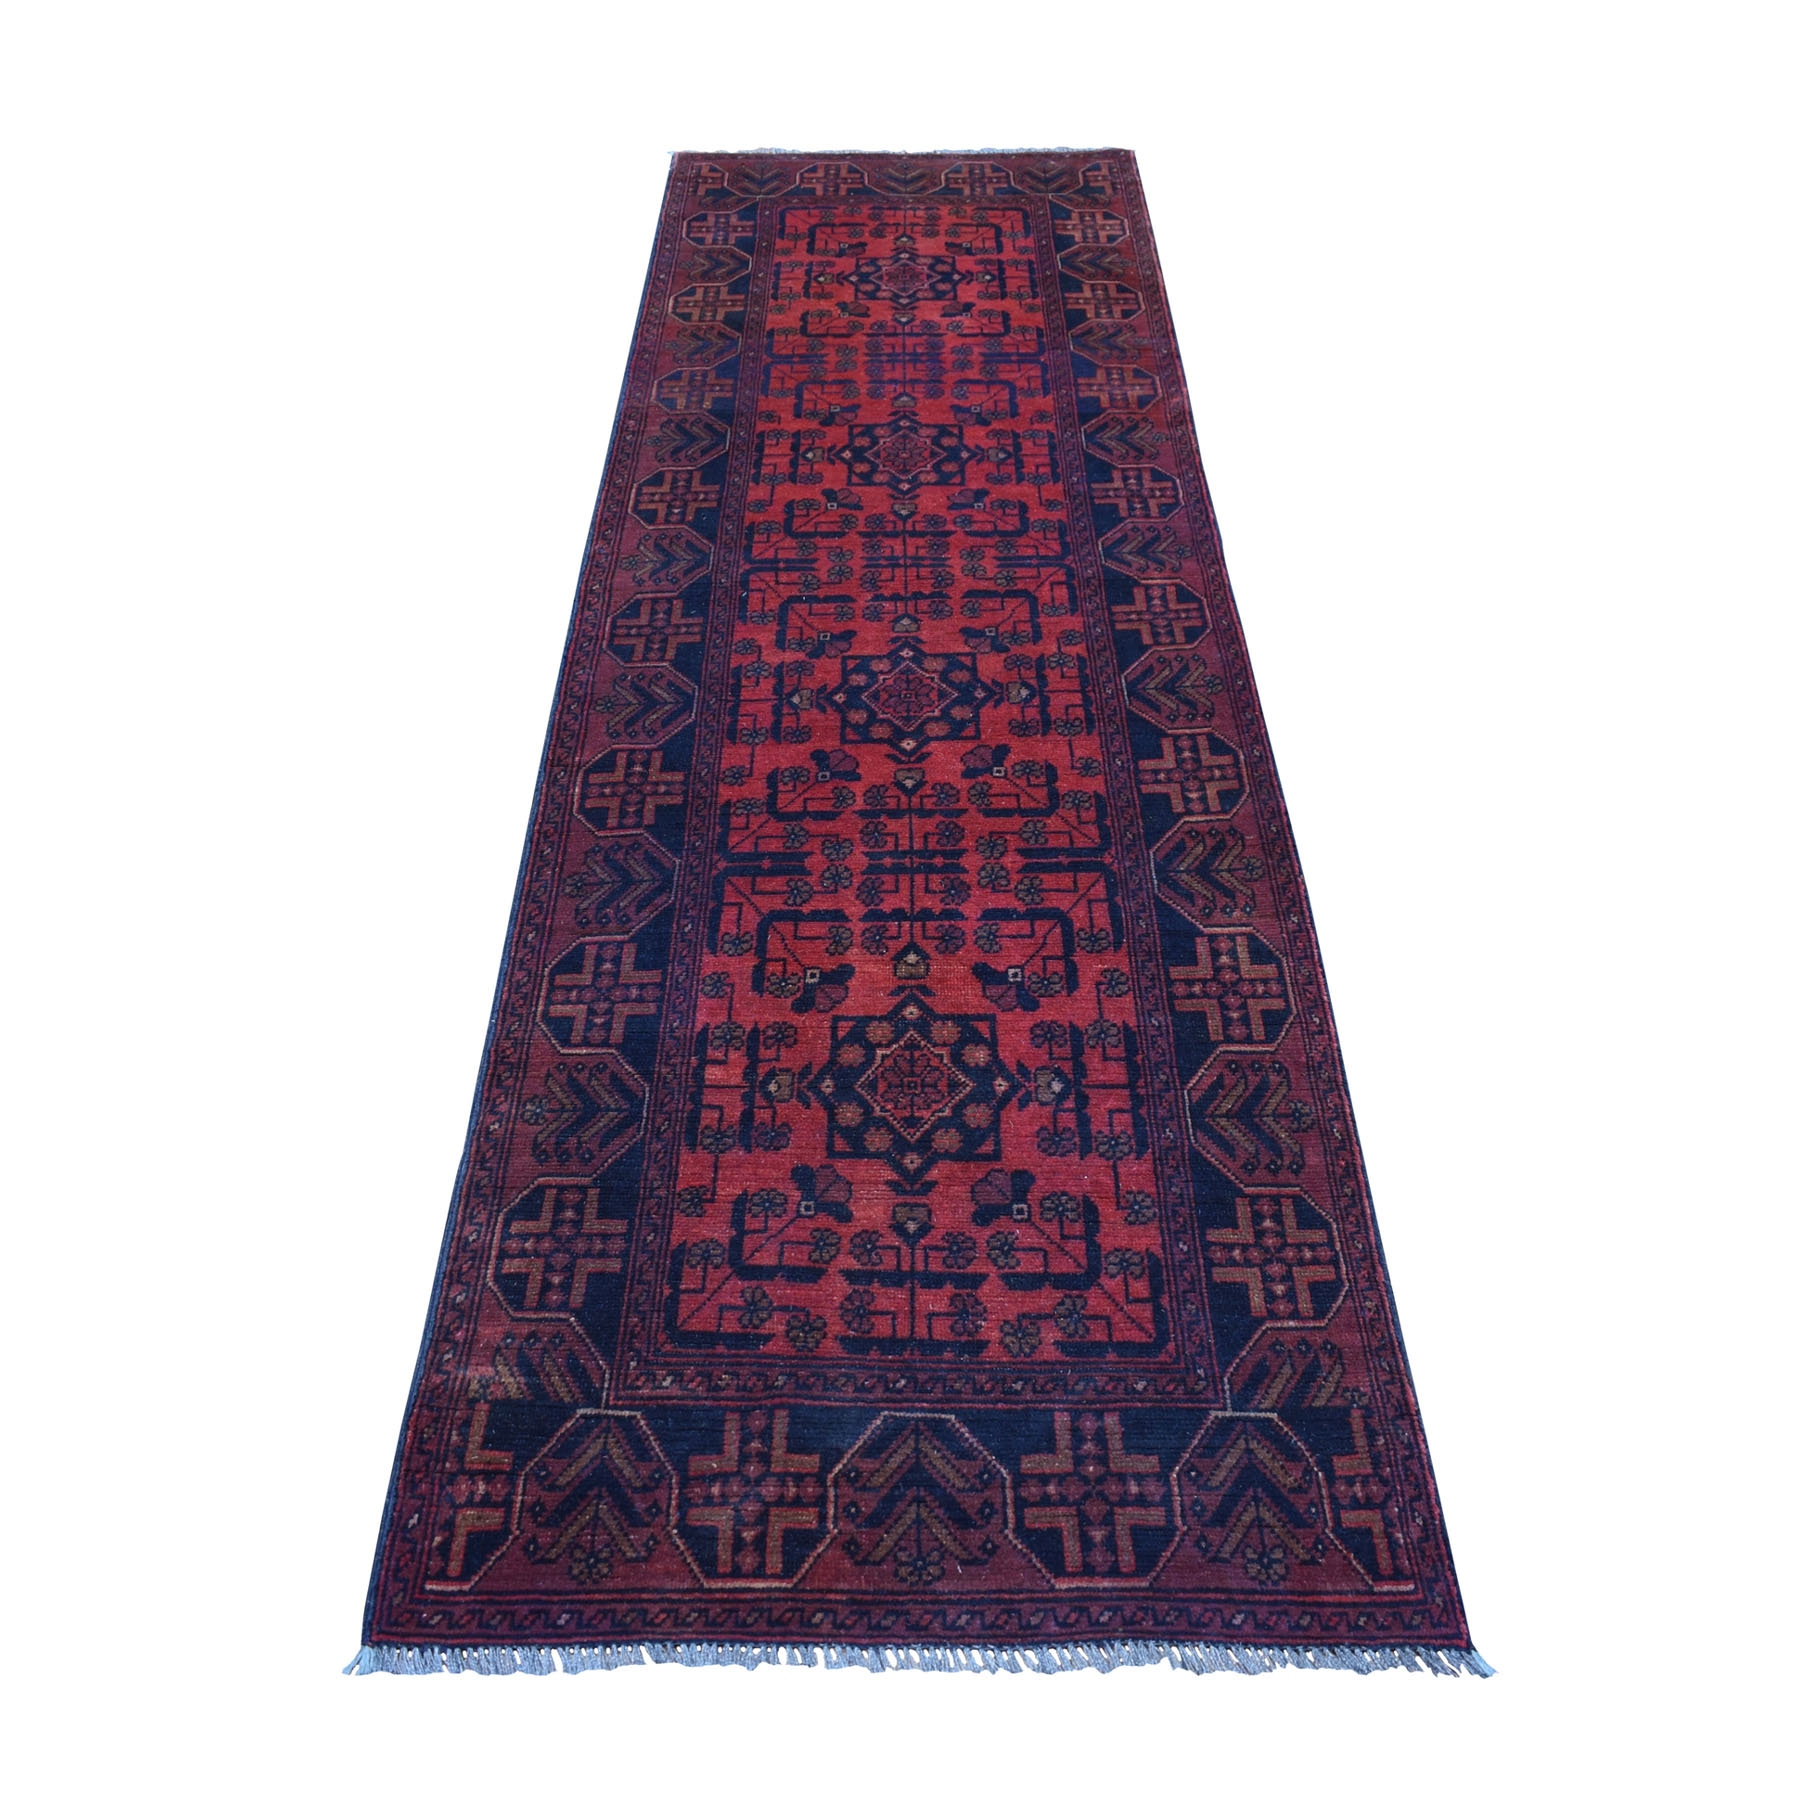 """2'9""""x9' Deep and Saturated Red Geometric Afghan Andkhoy Runner Pure Wool Hand Knotted Oriental Rug 53771"""